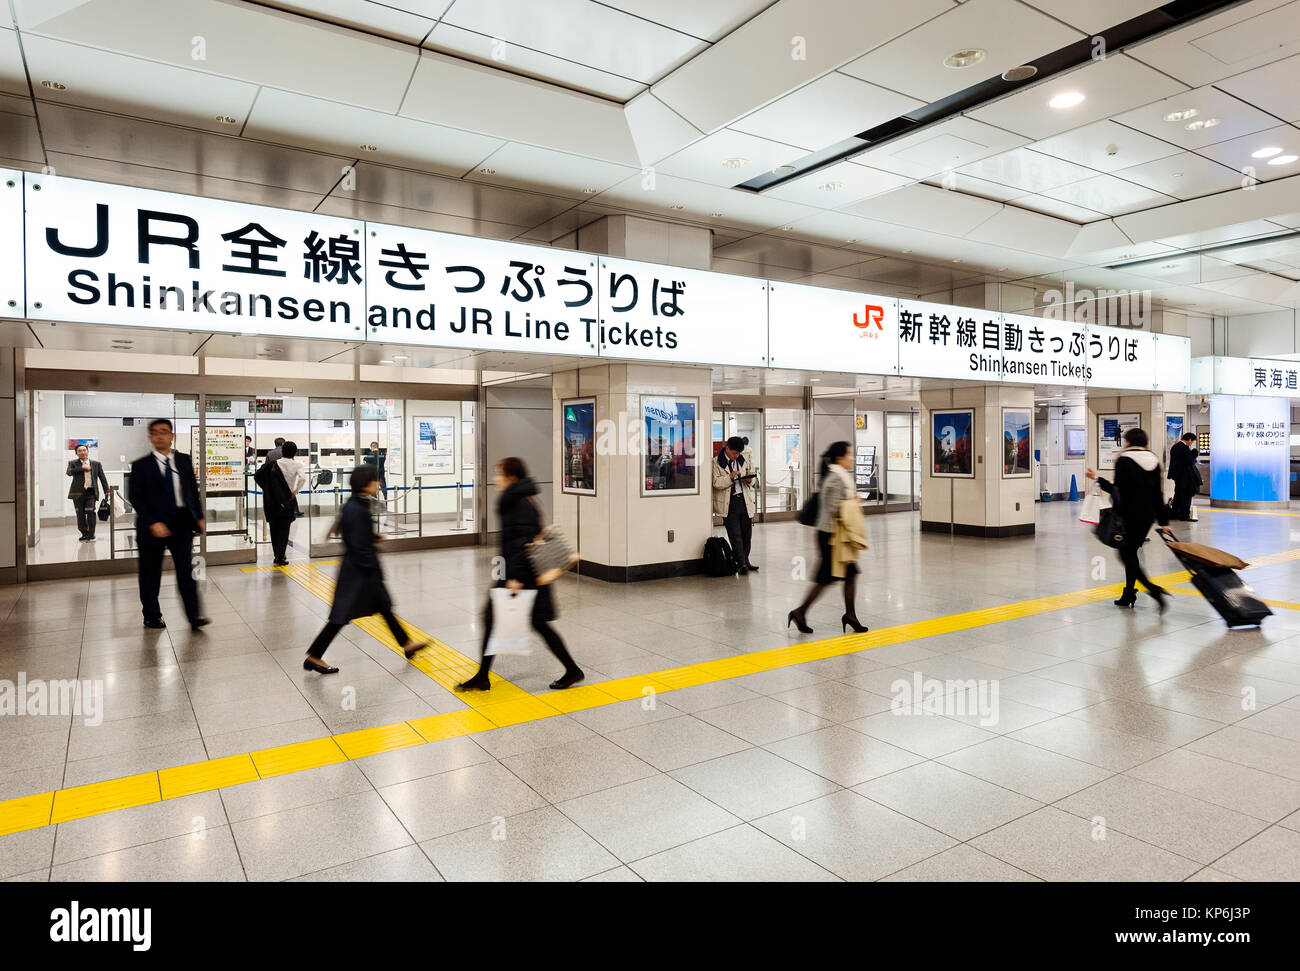 Shinkansen Ticket Counter Train Station - Stock Image